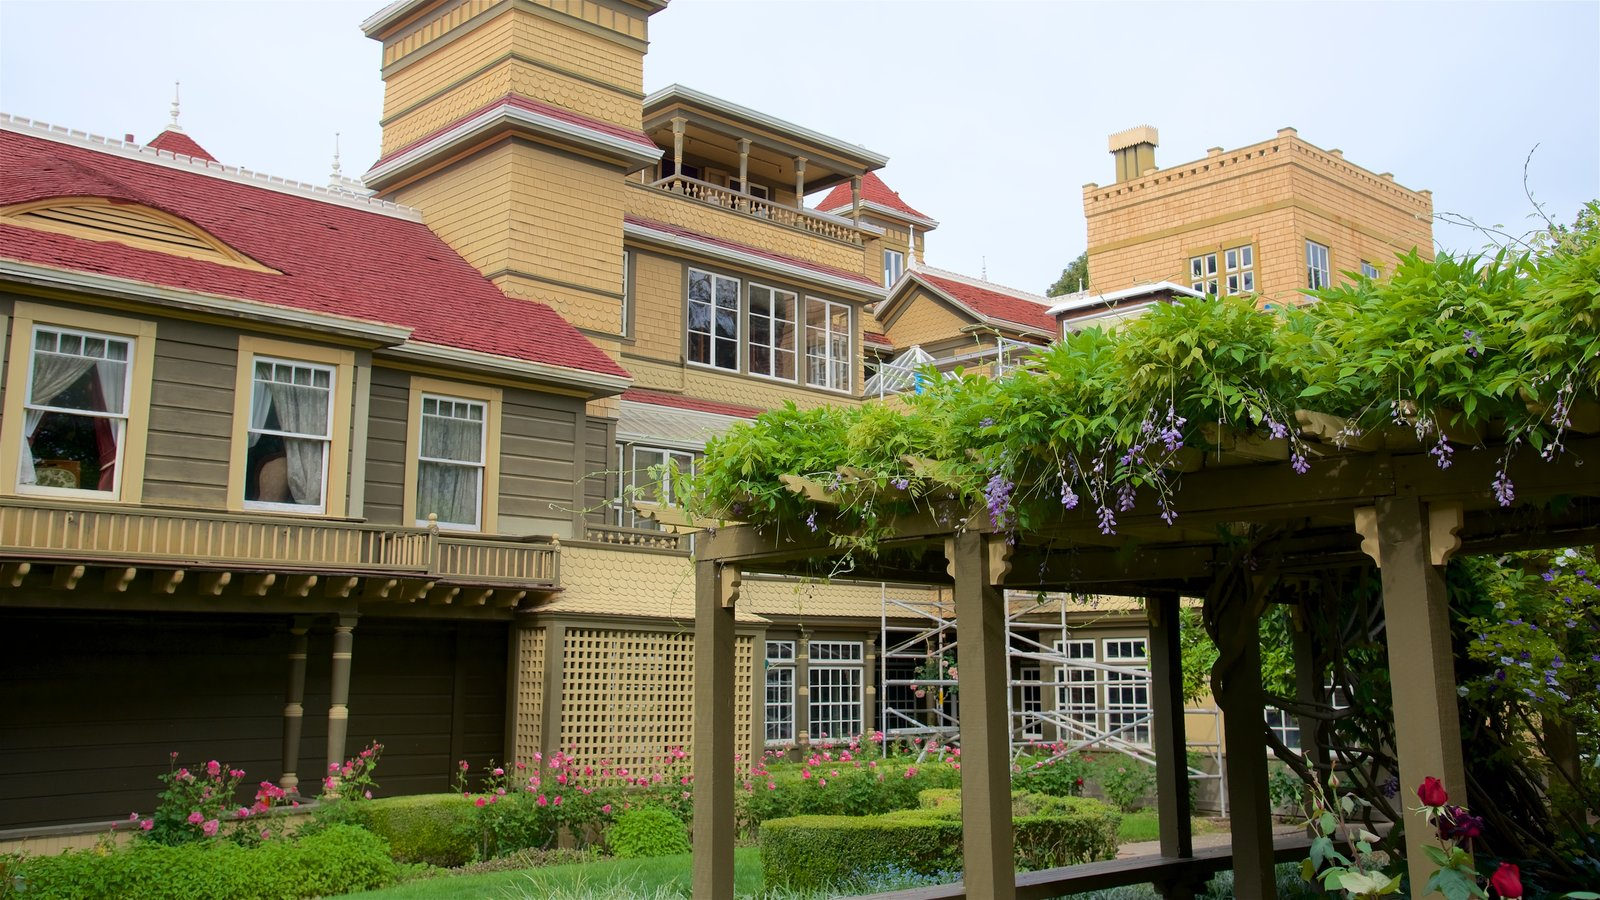 museum pictures view images of winchester mystery house